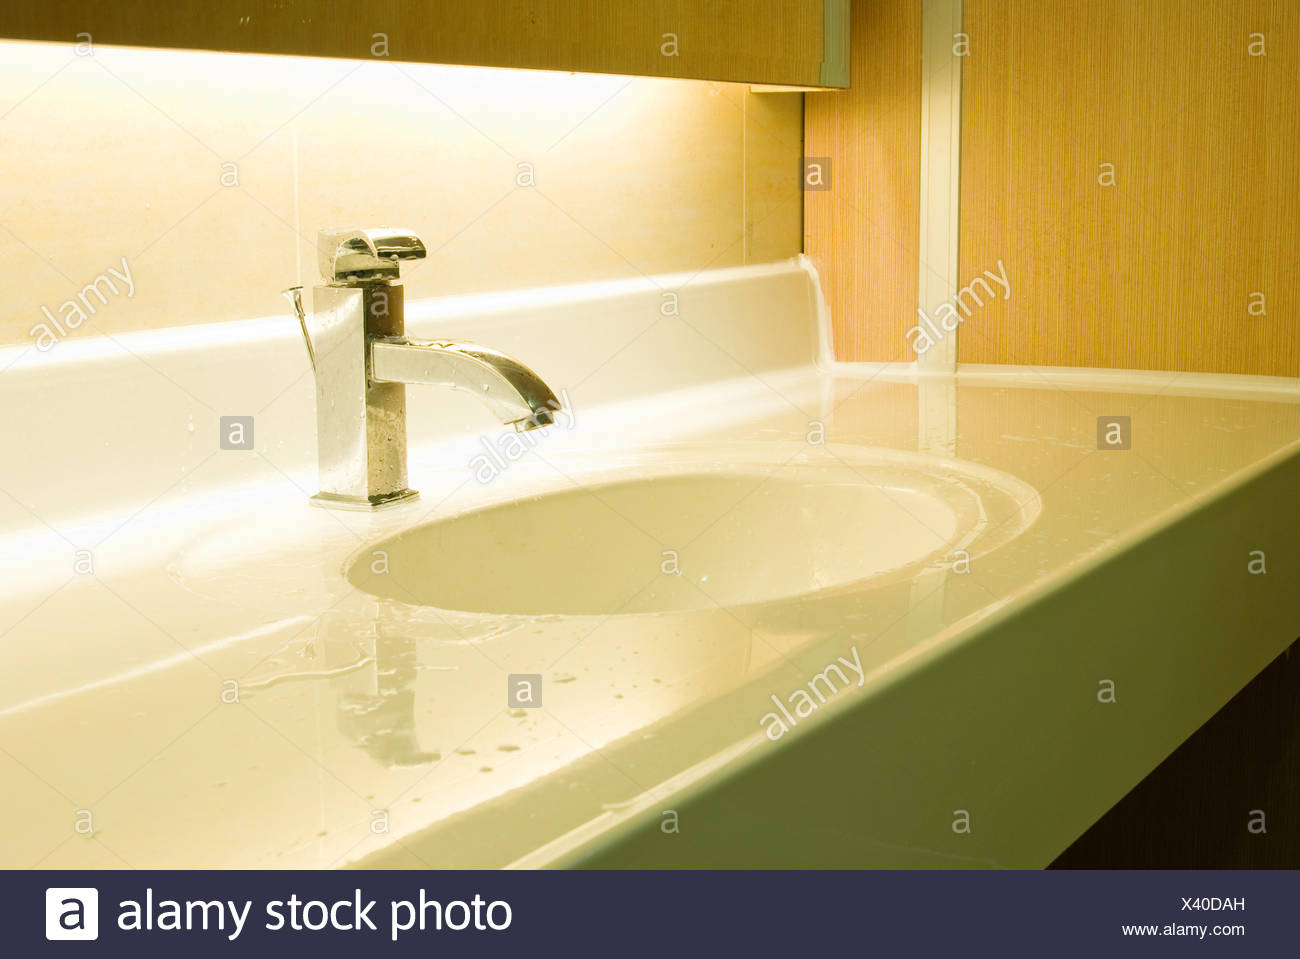 Tap Tile Wash Stock Photos Tap Tile Wash Stock Images Alamy - Dah tile